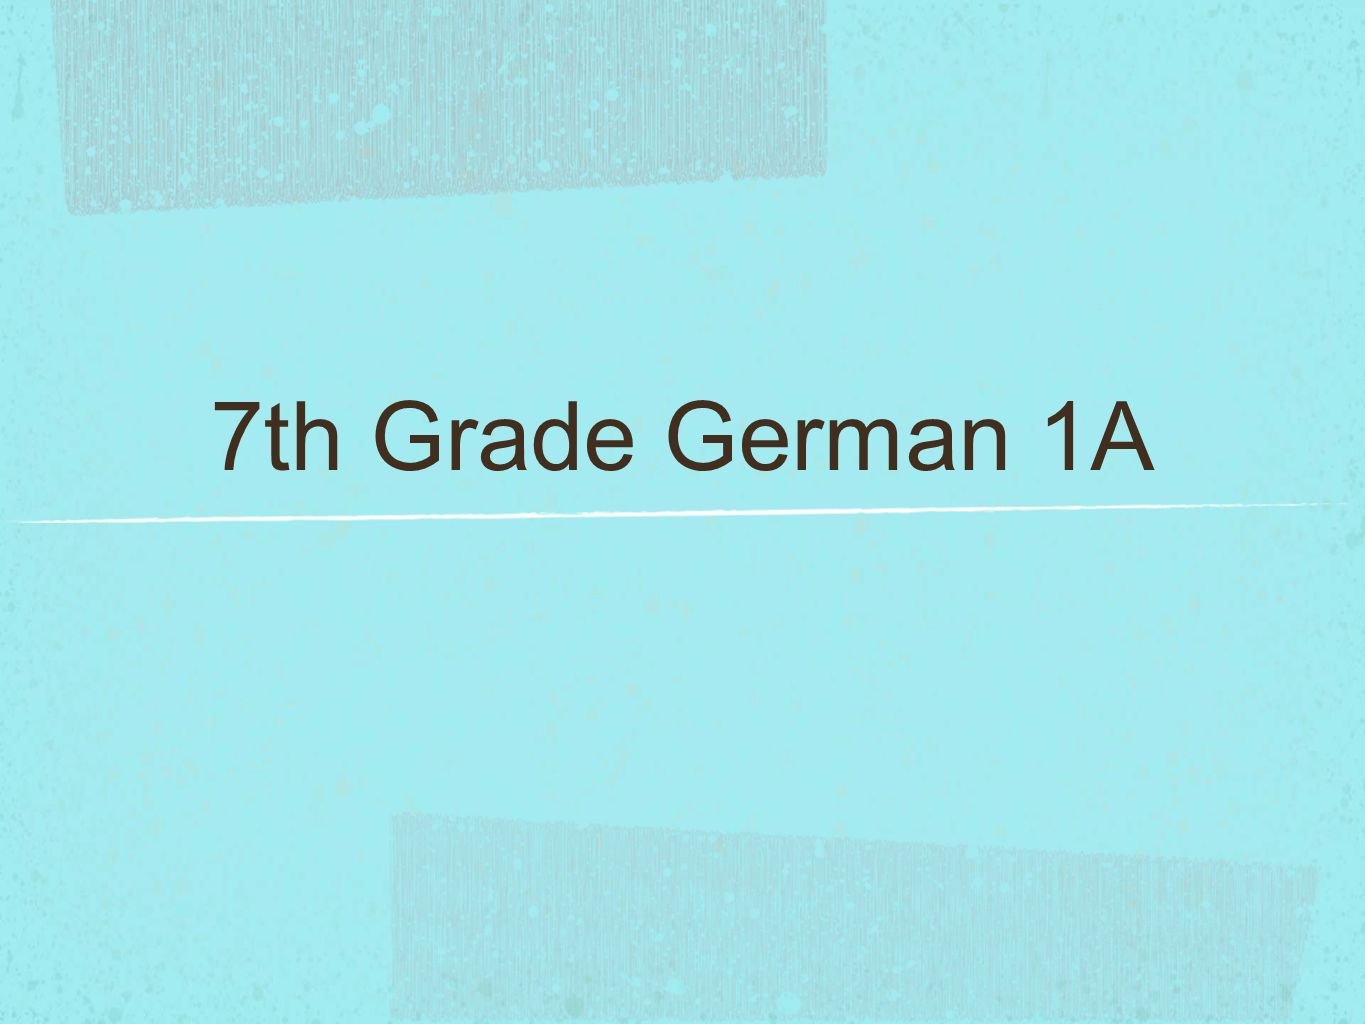 7th Grade German 1A